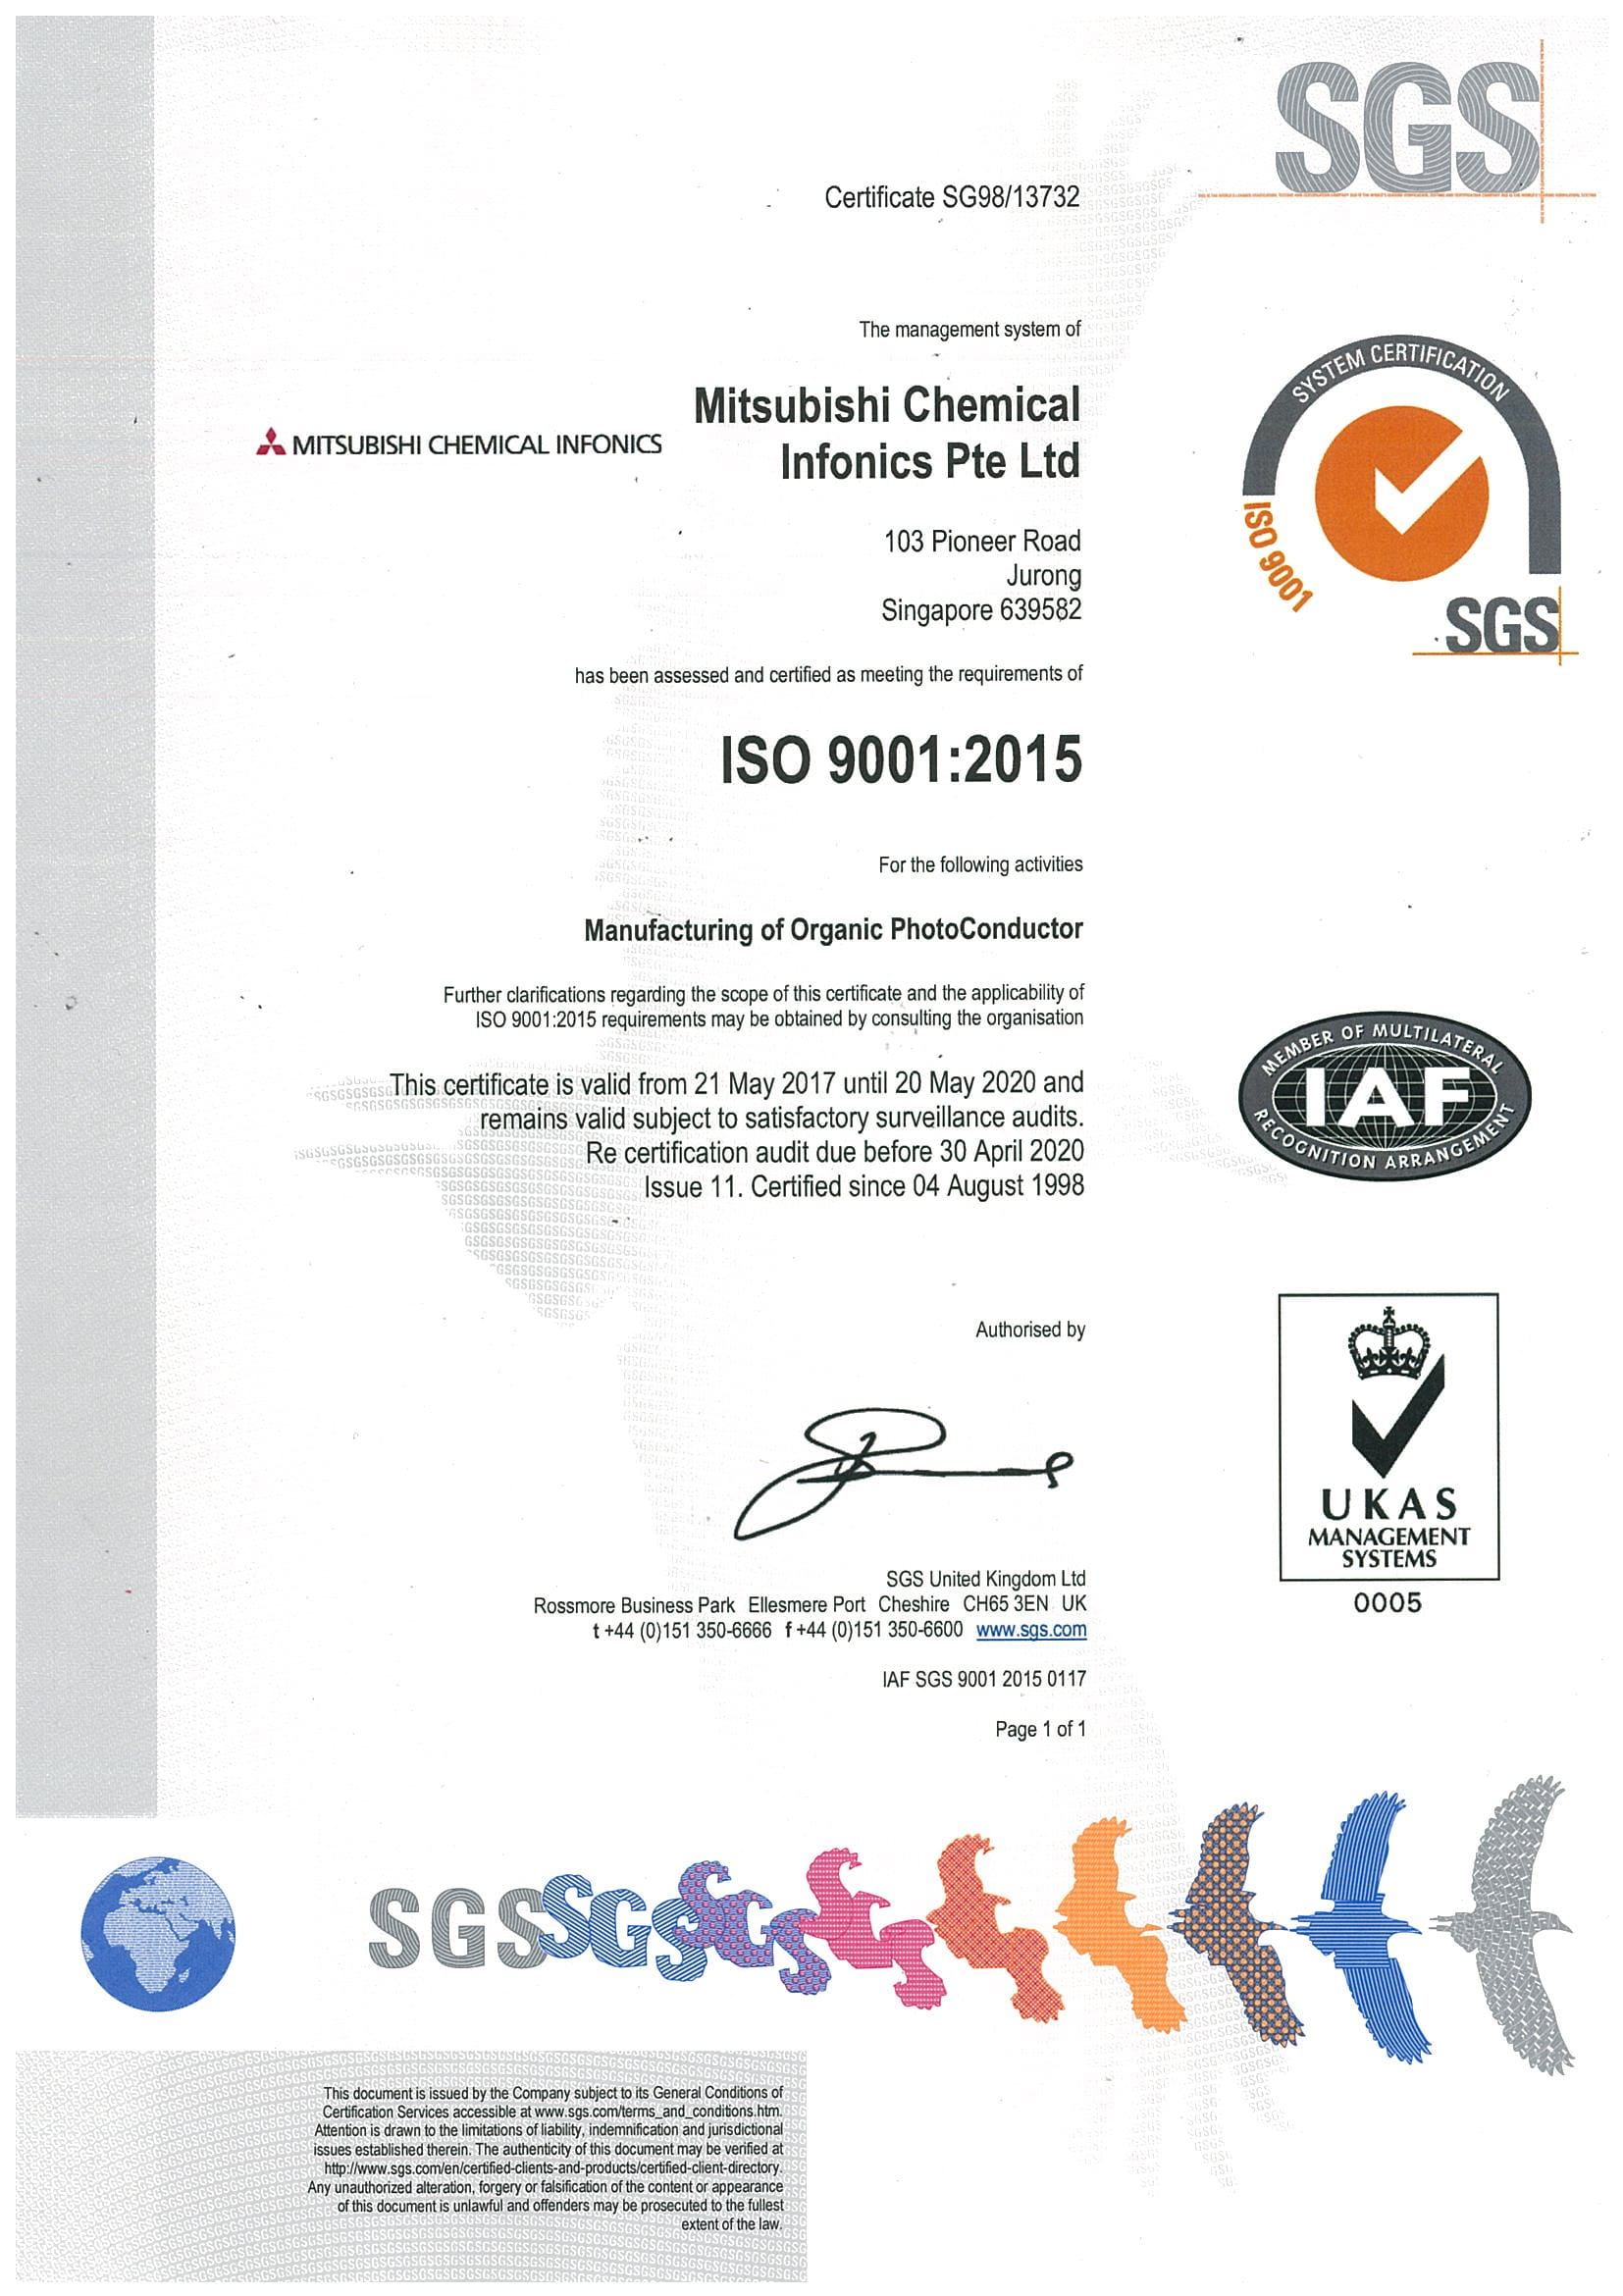 MCI_ISO 9001-2015 Certificate_Expired 20 May 2020-1.jpg